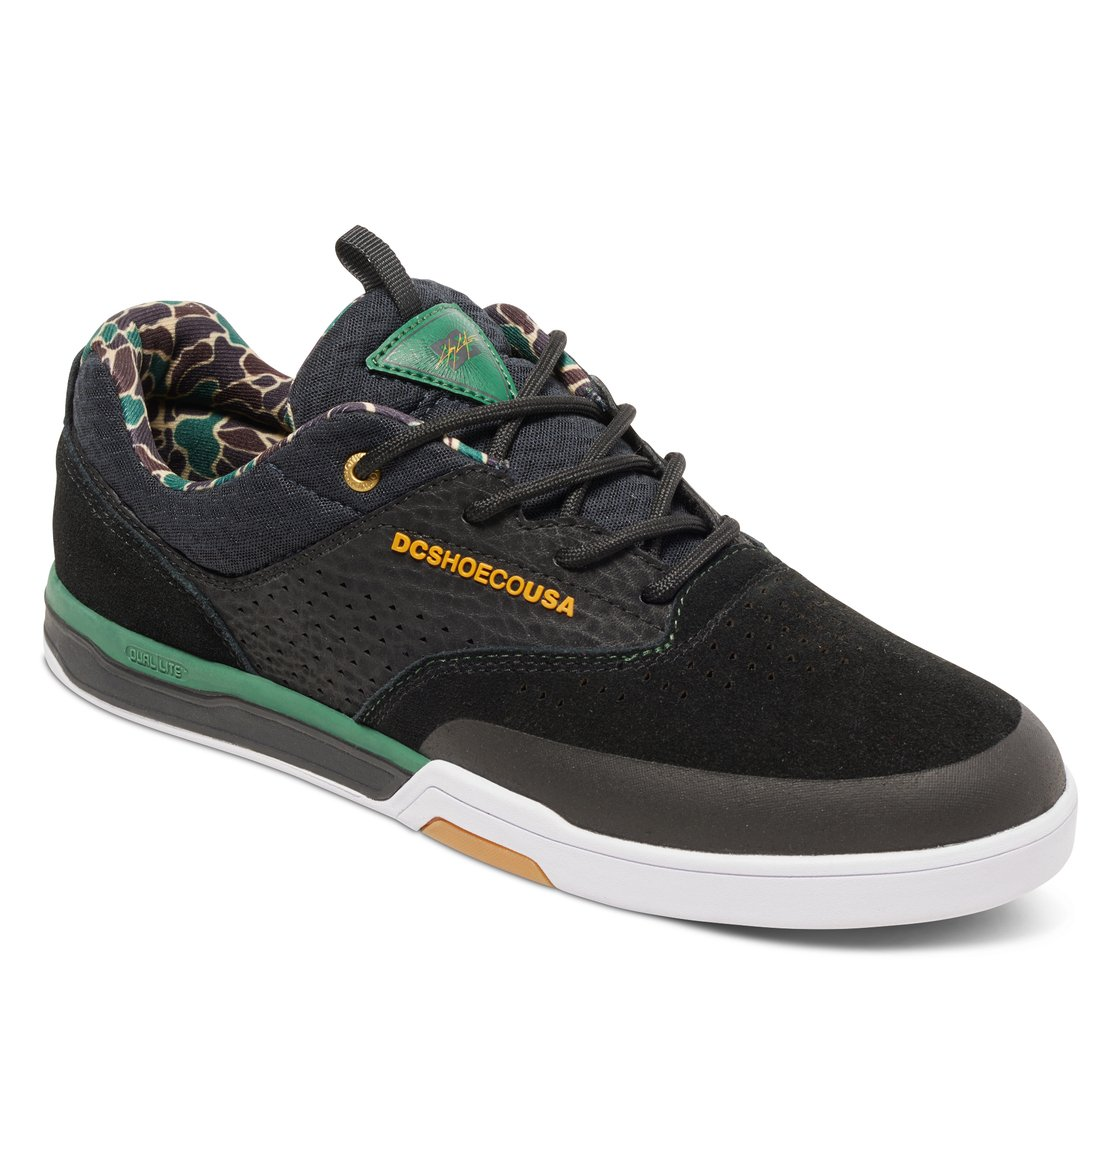 Skate shoes difference - 1 Men S Cole Lite 3 S Skate Shoes Black Adys100230 Dc Shoes